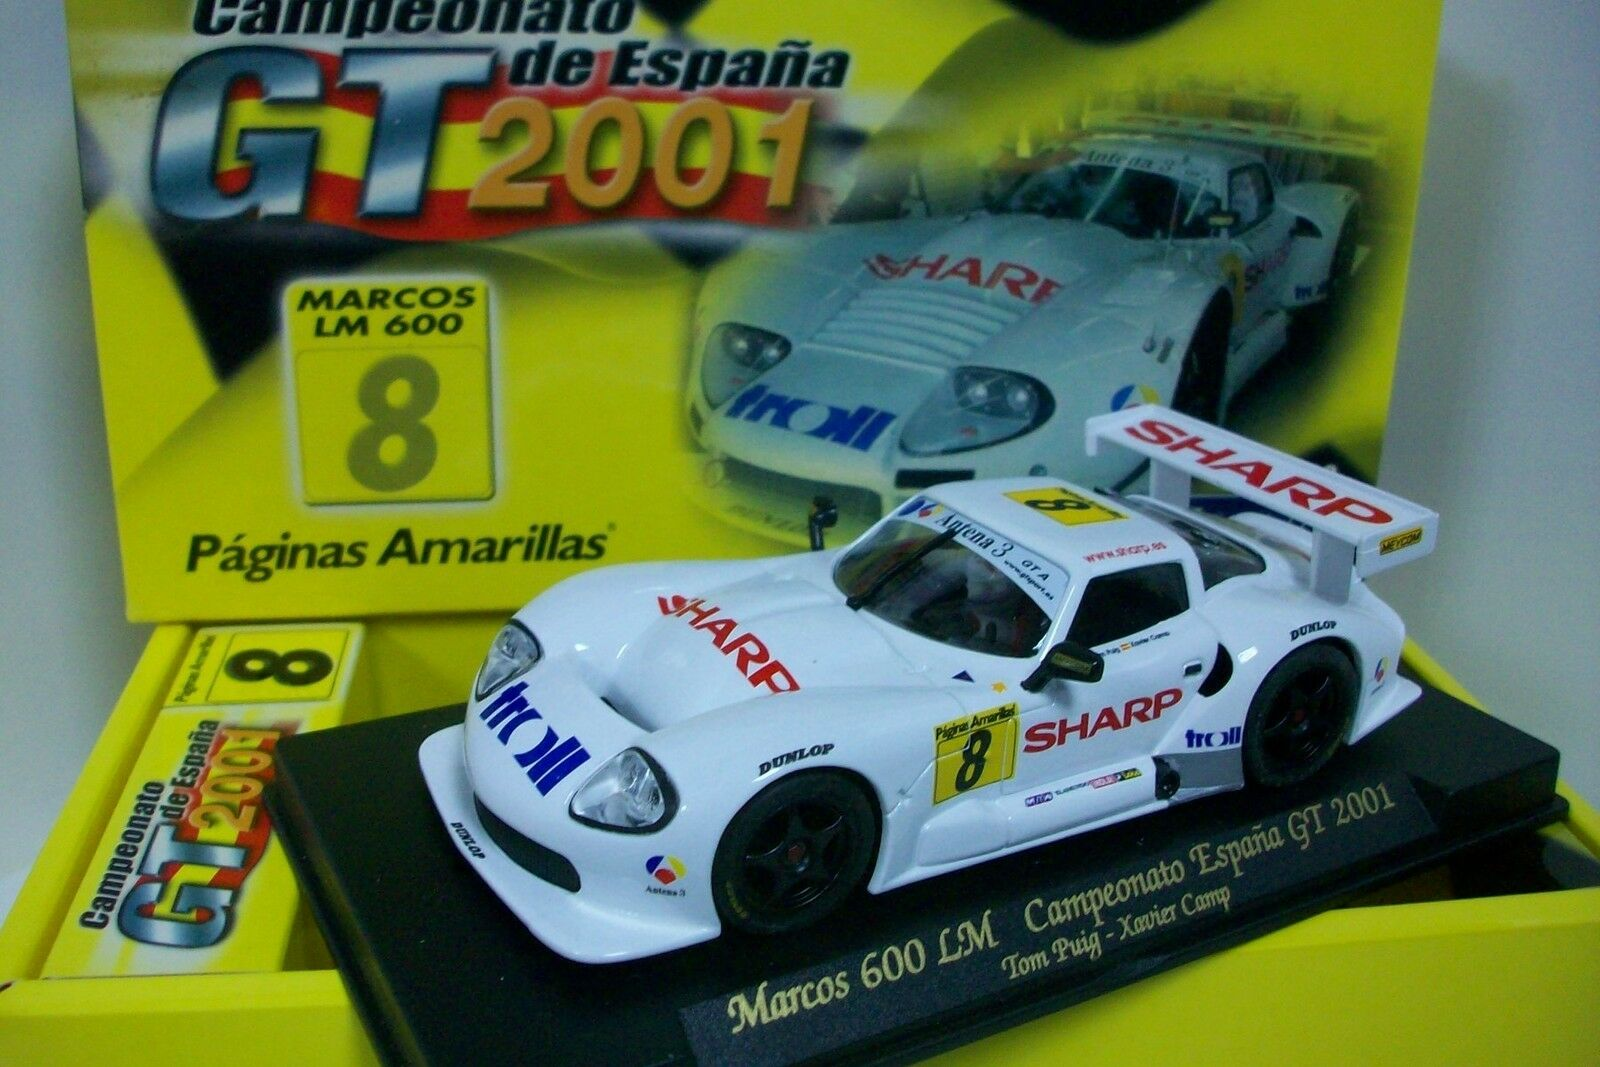 Fly Pa1   Auto Marcos Lm600, Neu   Lagerräumung   (Kompatibel Scalextric)